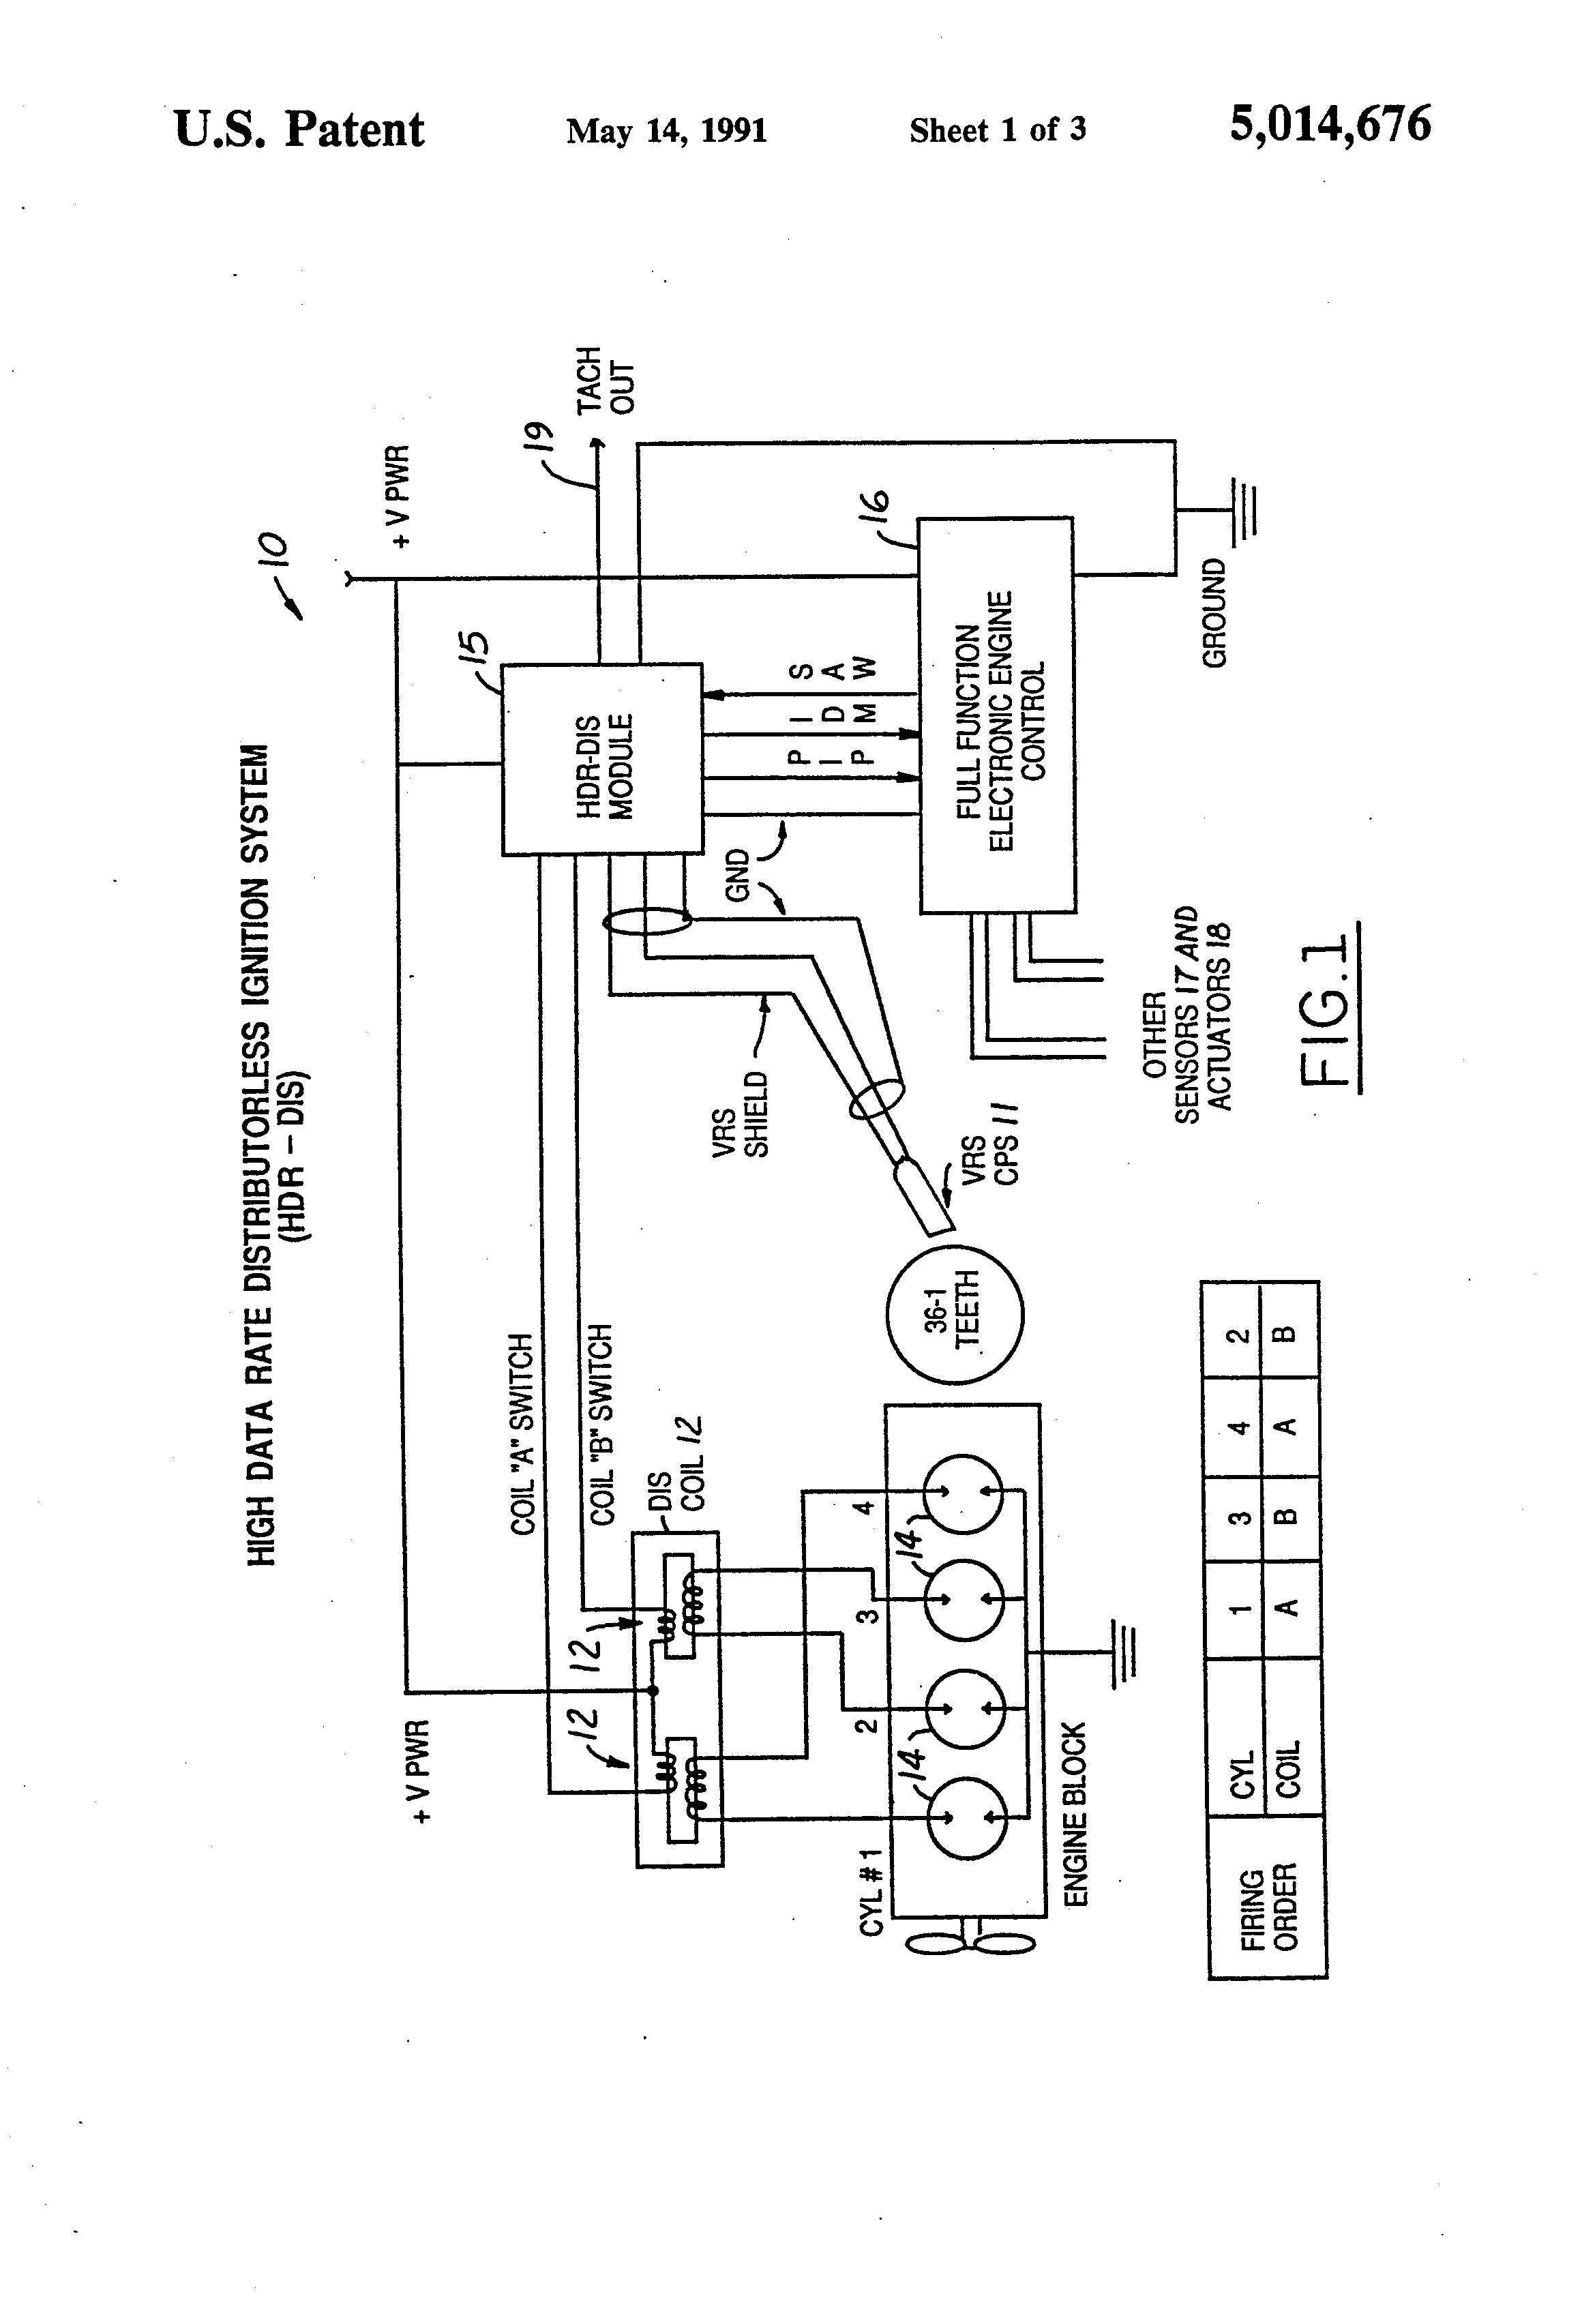 US5014676 1?resize\=665%2C977 wiring diagram dea355 microphone wiring diagrams \u2022 wiring diagram  at gsmx.co